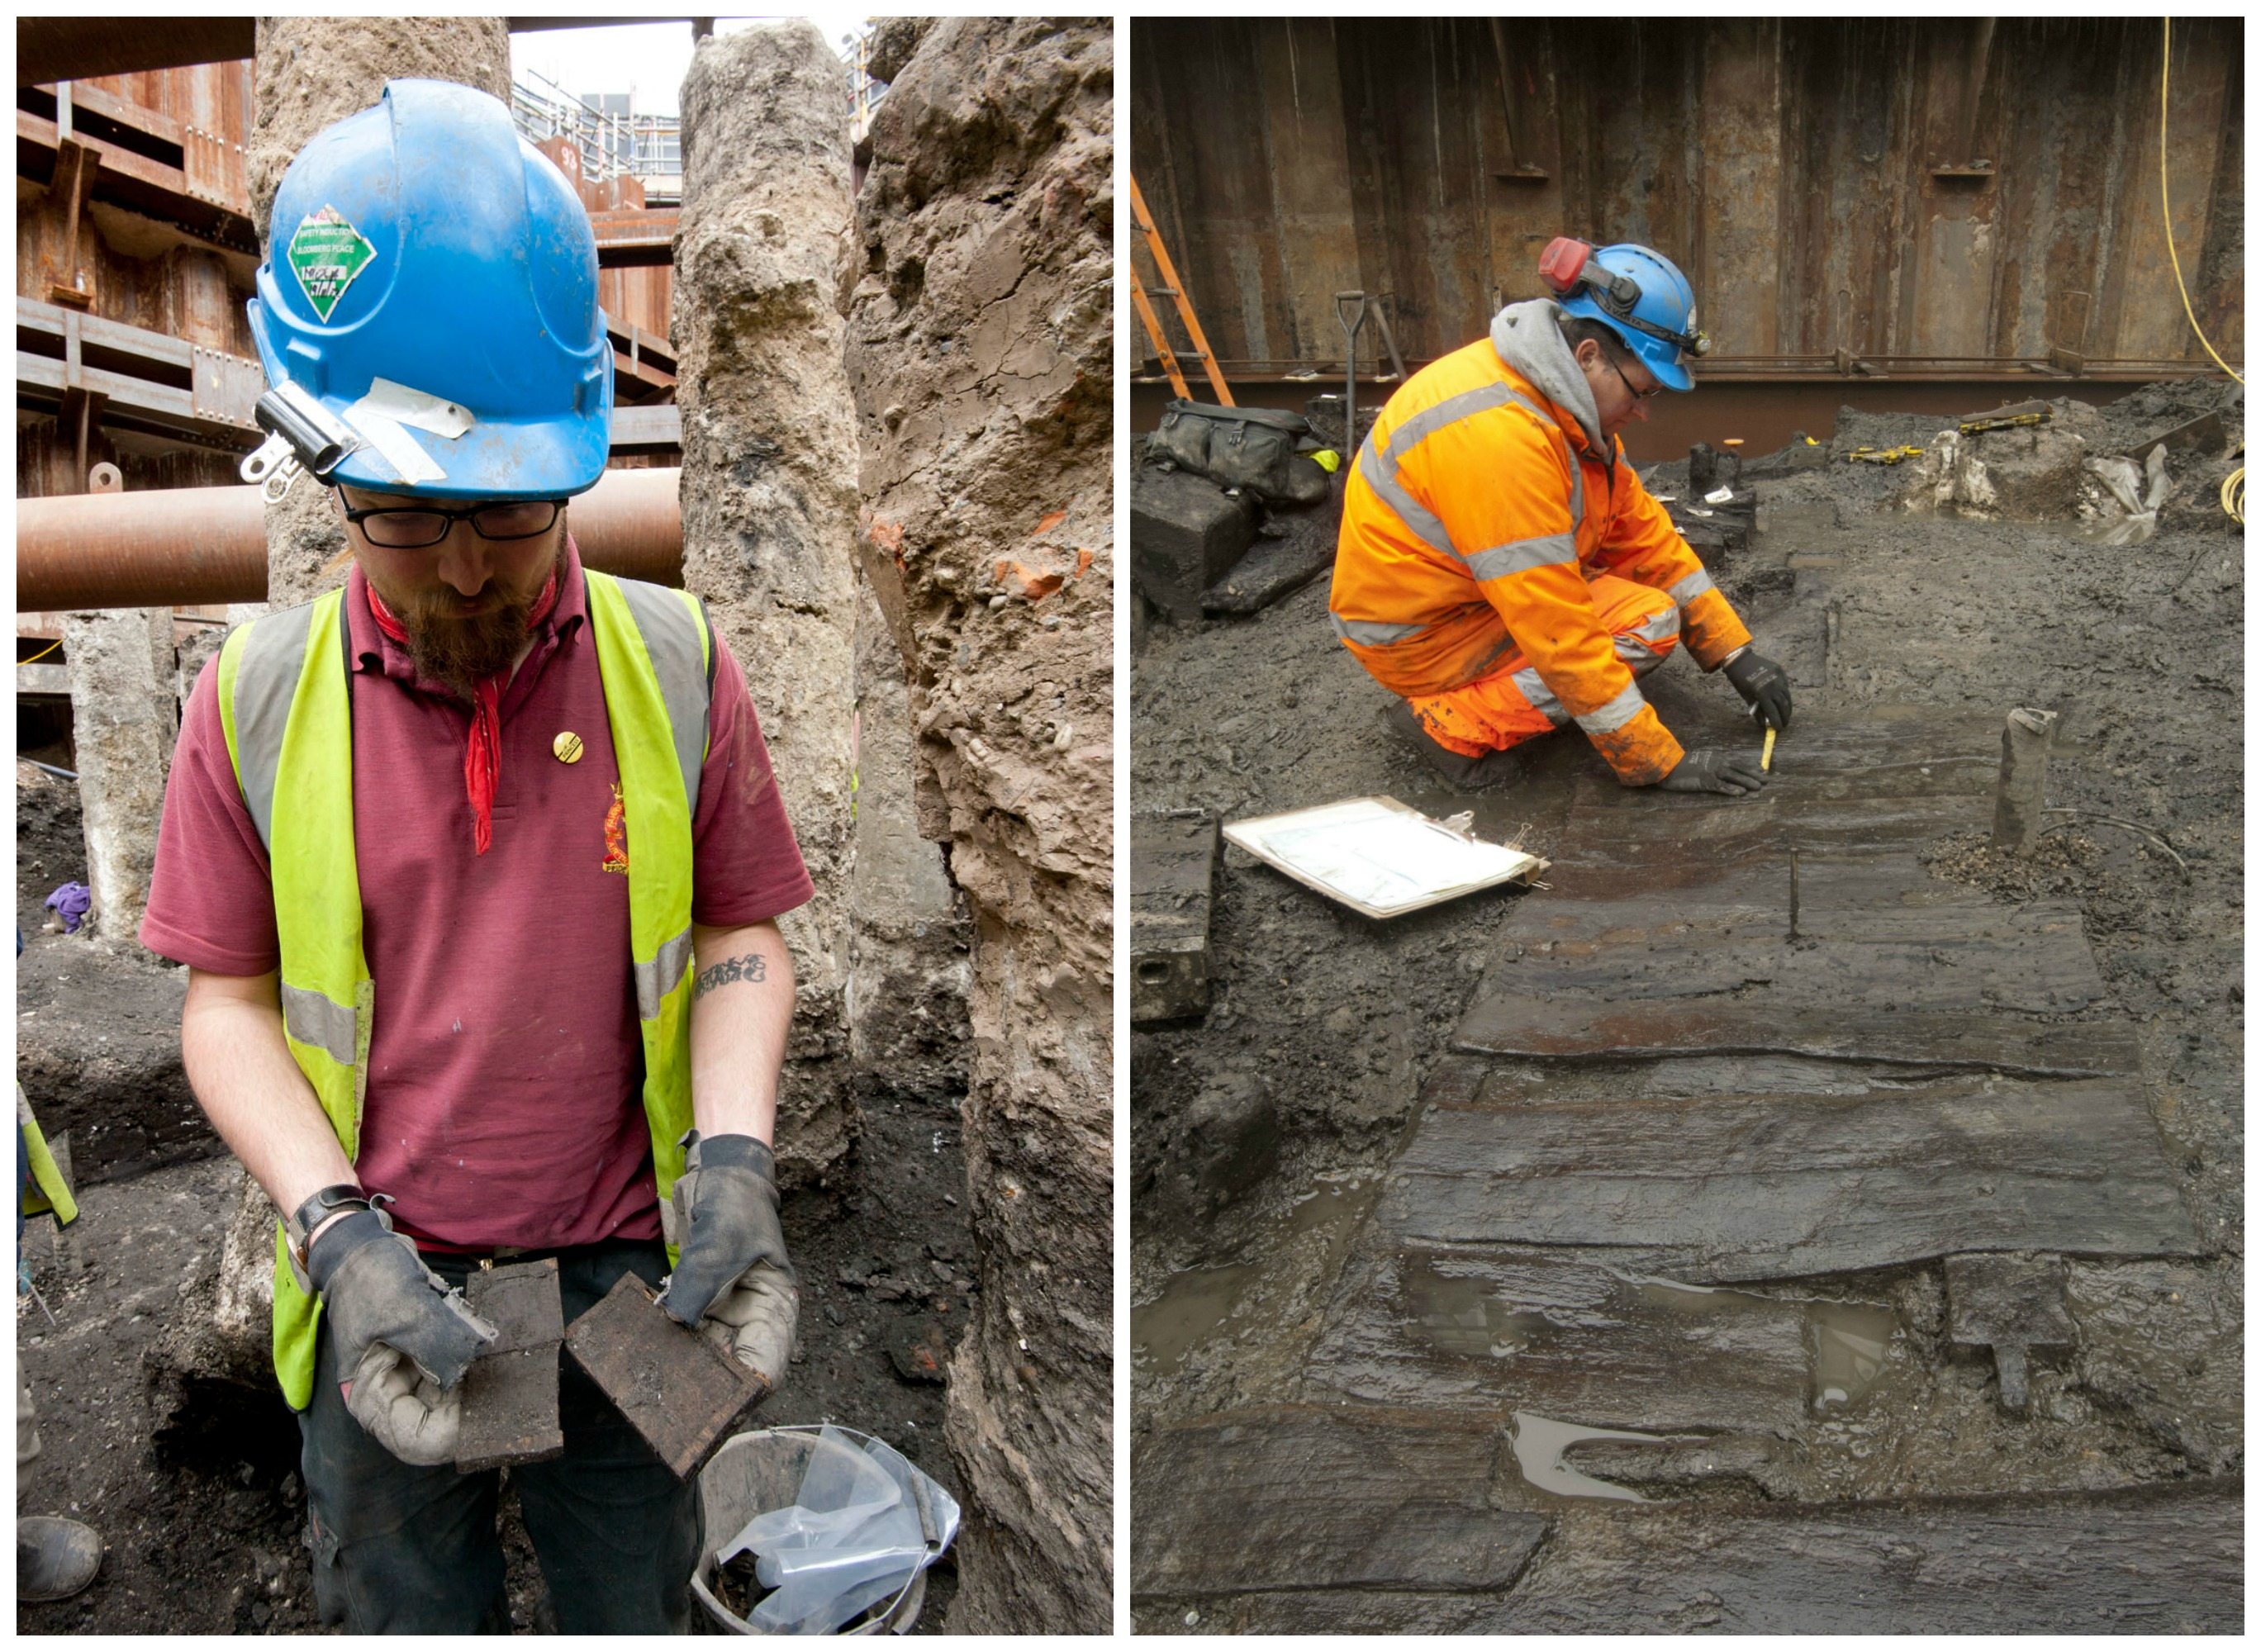 Archaeologist with a tablet just discovered on site // Exceptional preservation of wood in muddy ground at Bloombery | Courtesy of MOLA